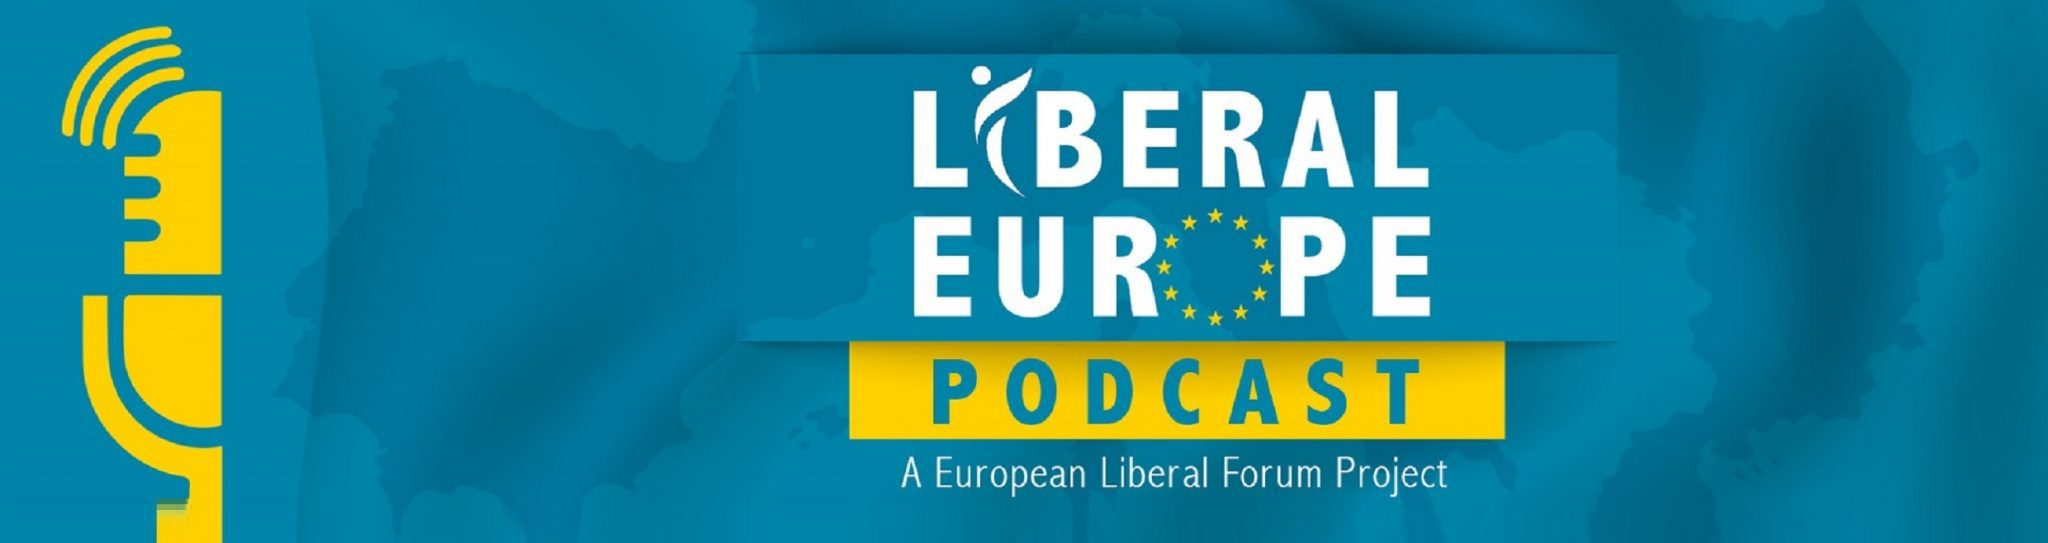 Liberal Europe Podcast – Ep70 – Talking AIM For Europe With Pascal Jacobs